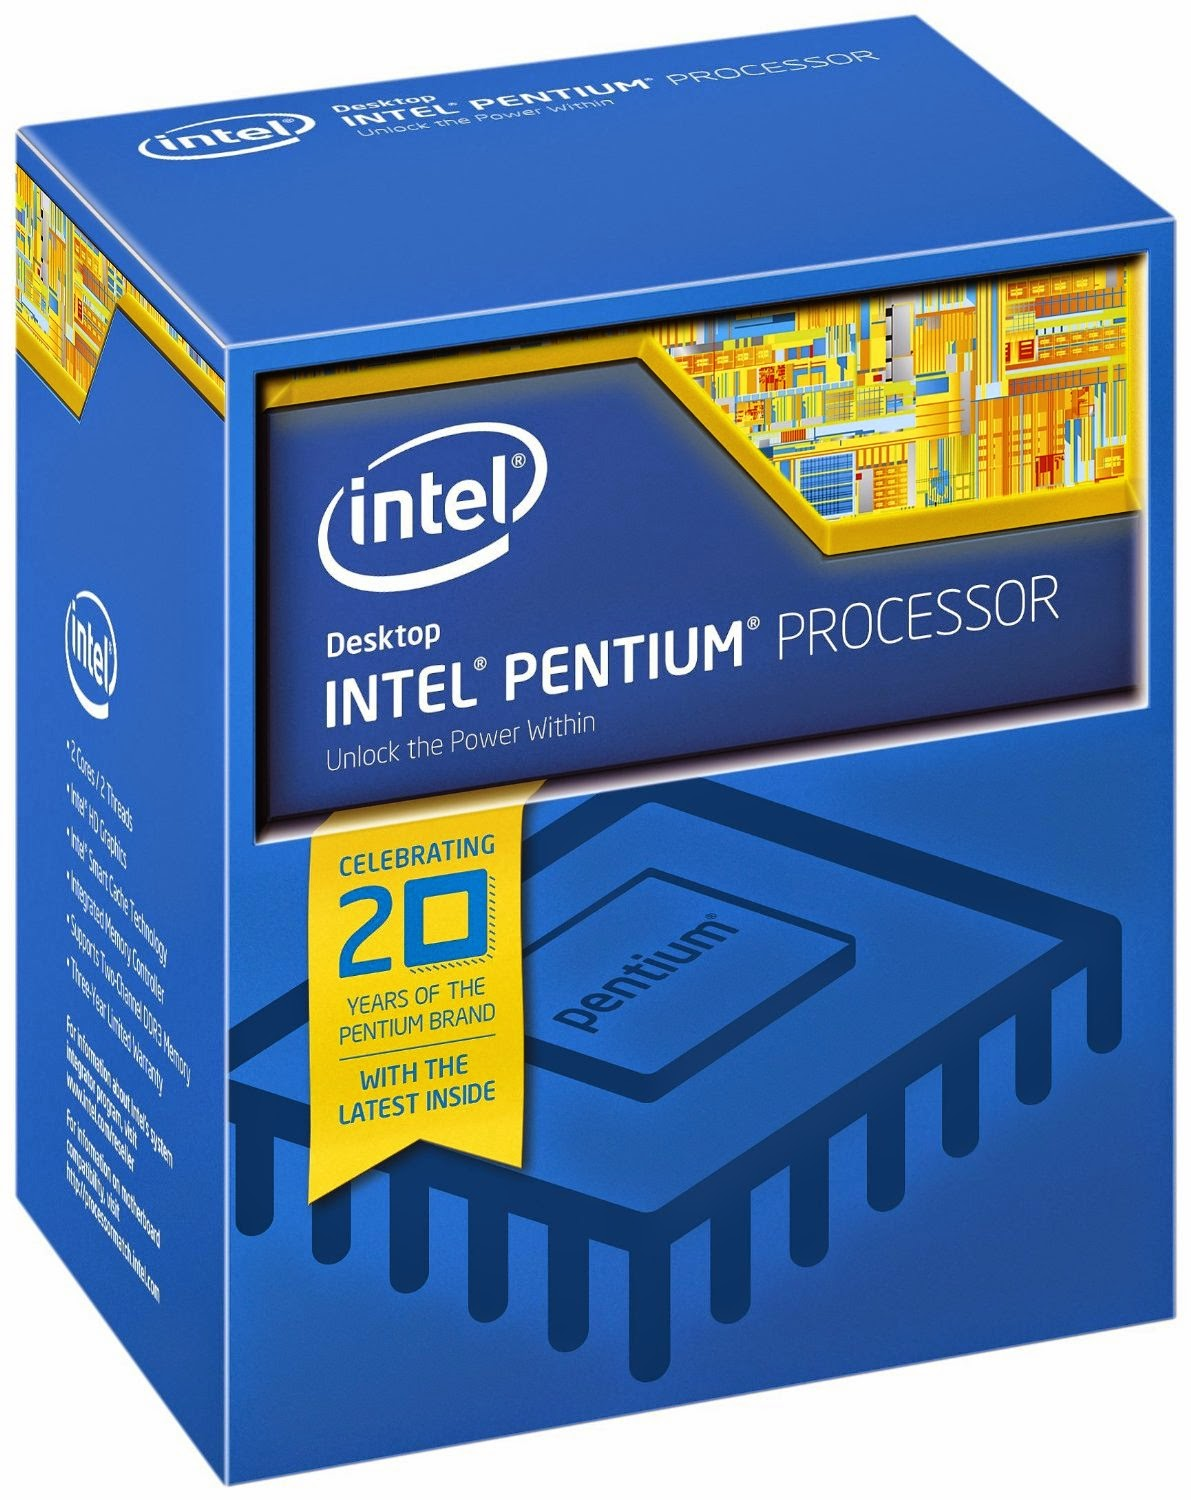 Buy Intel Pentium G3258 Dual Core processor (3MB, 3.20GHz) by Intel Rs.5,349 only at Amazon